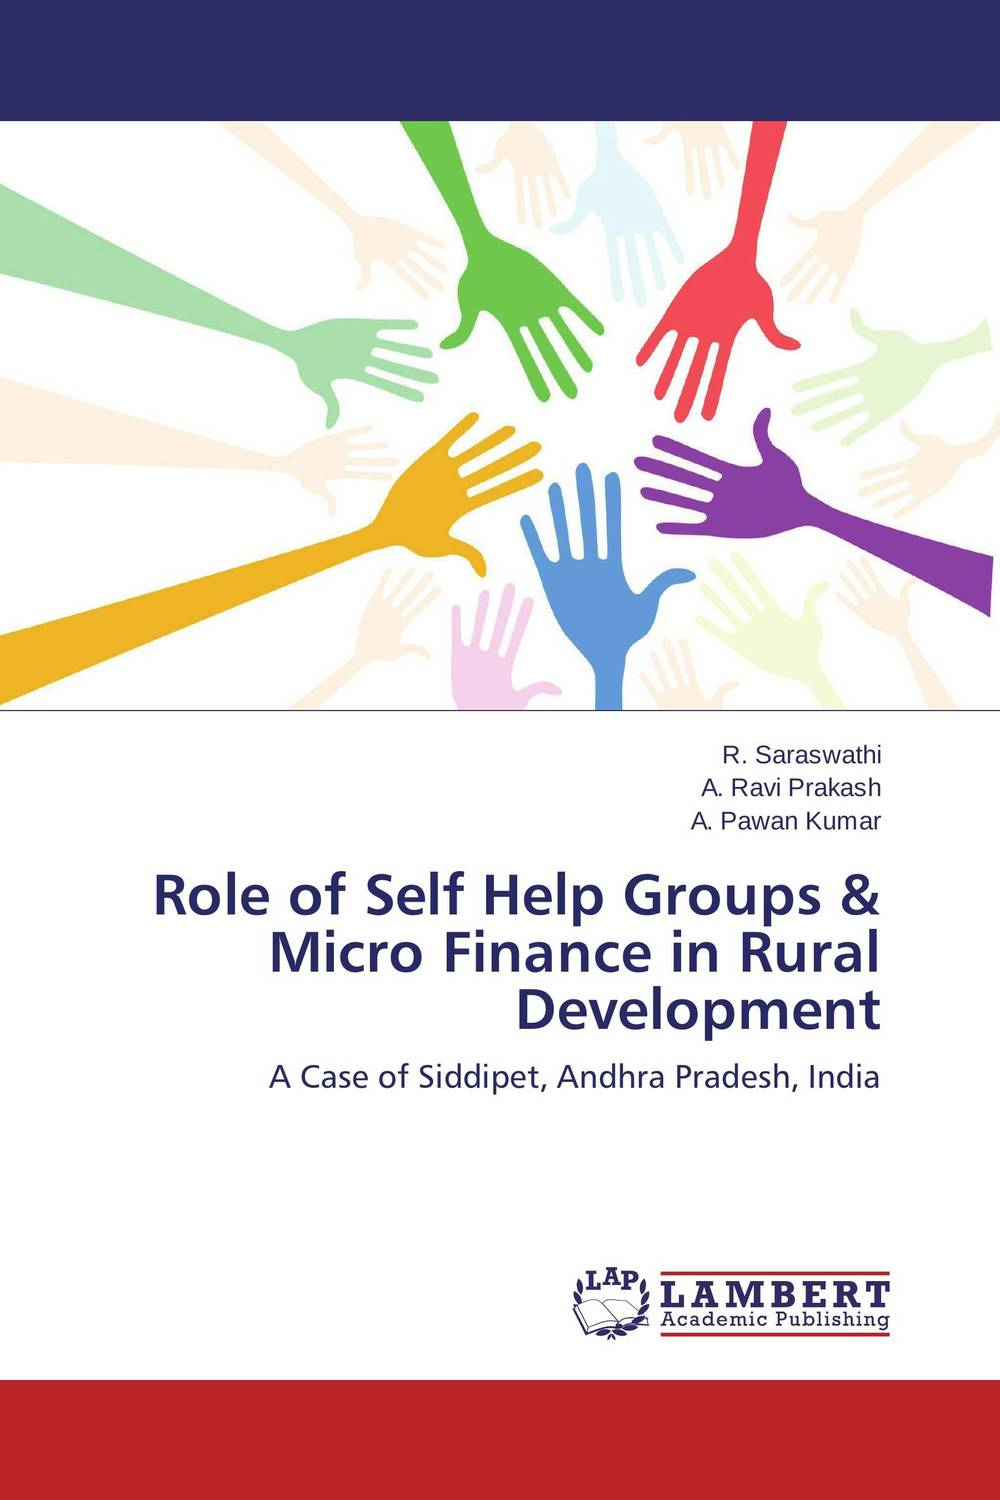 Role of Self Help Groups & Micro Finance in Rural Development micro finance in india